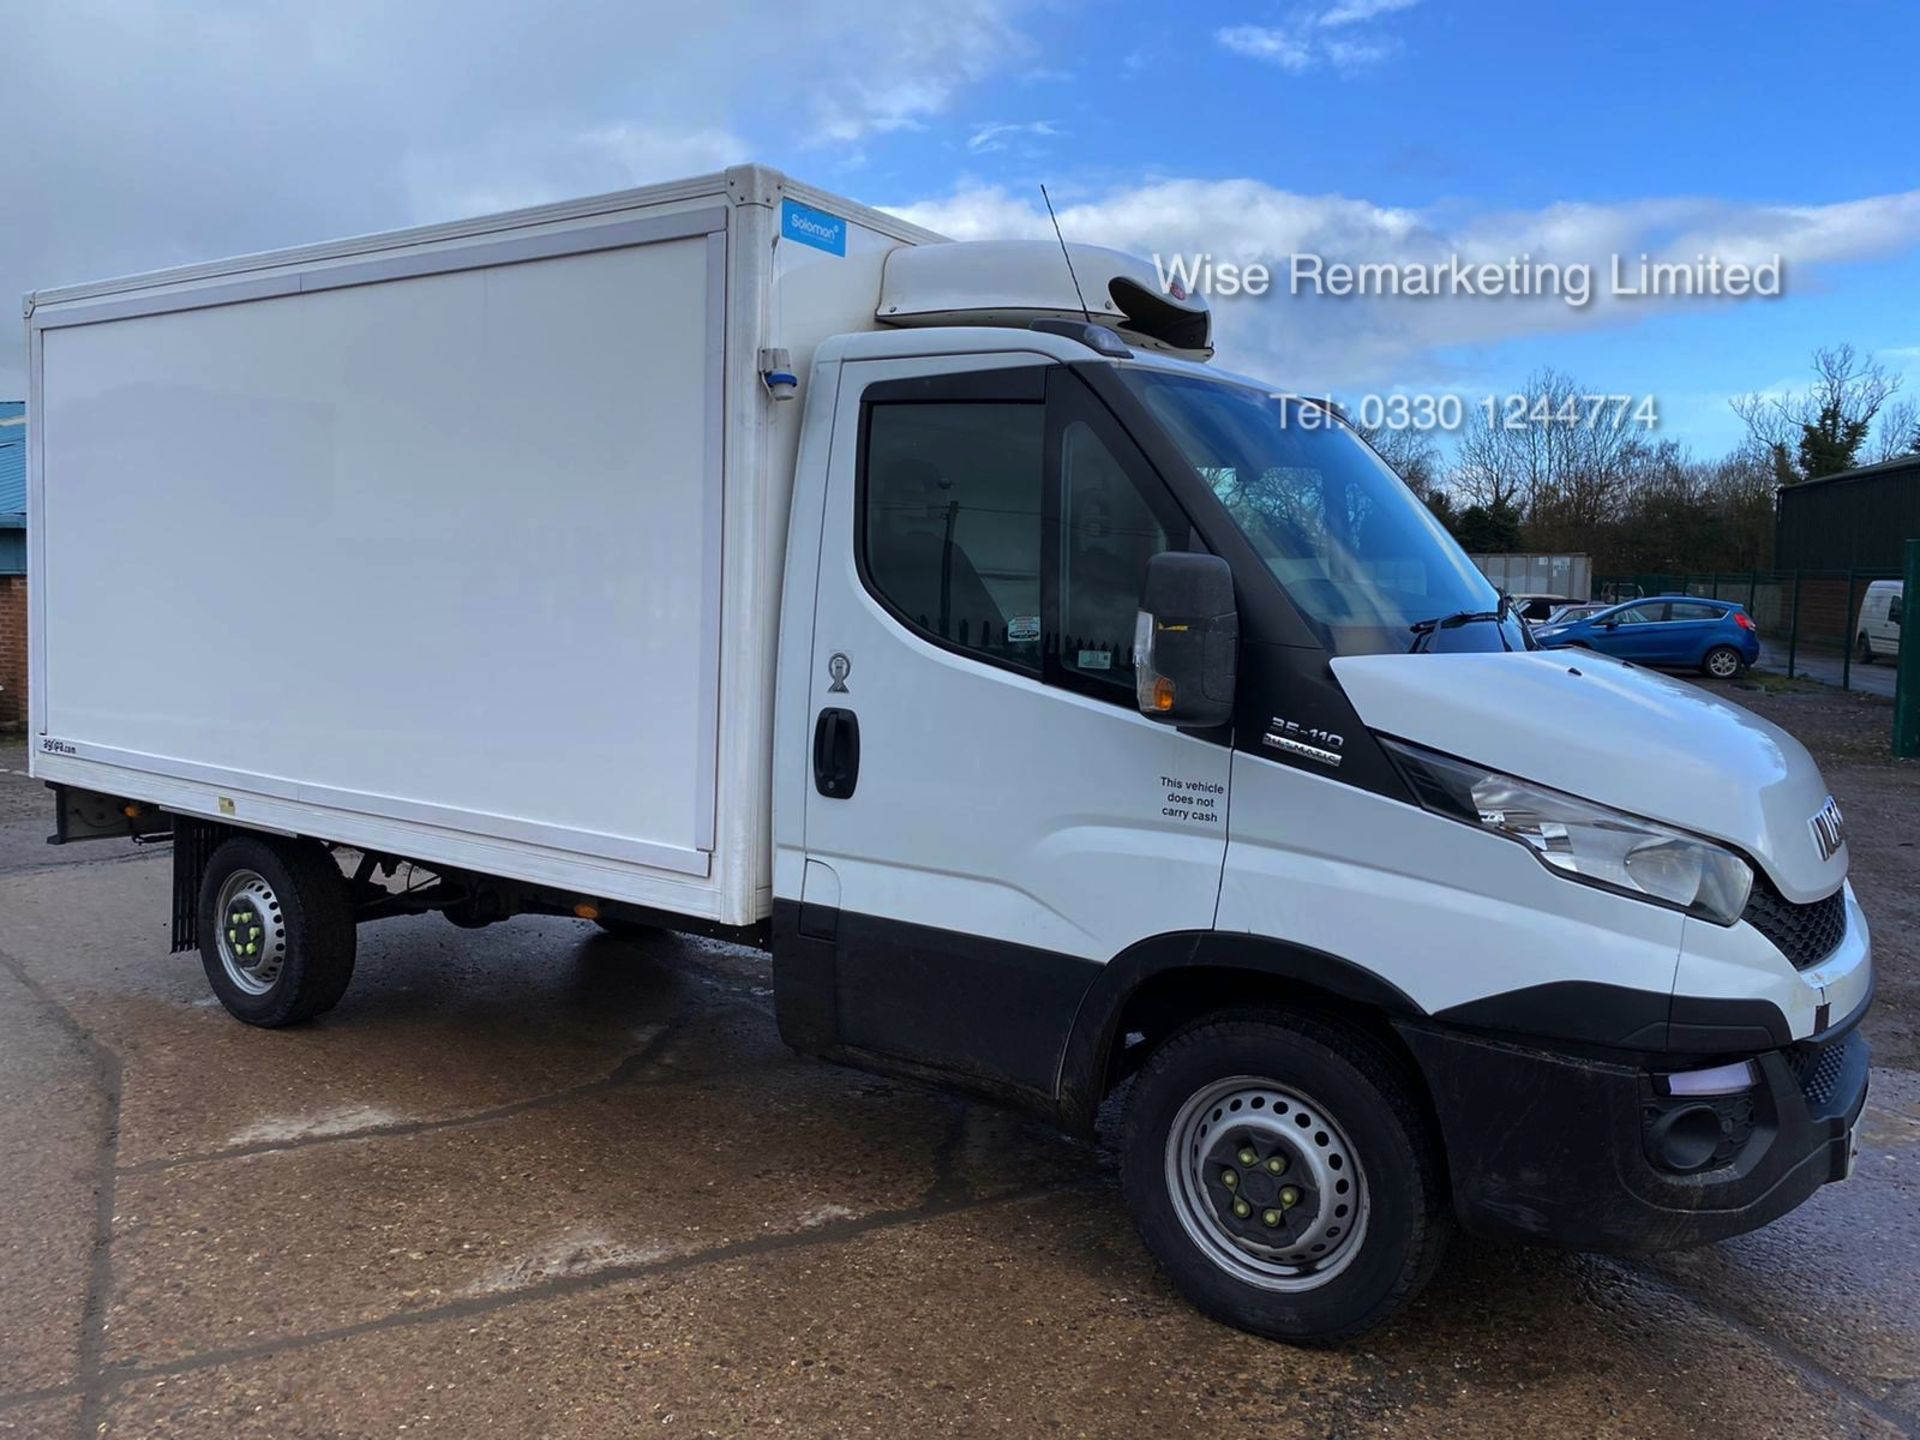 Lot 7 - (RESERVE MET) Iveco Daily 35S11 2.3 TD Fridge/Freezer Box Van - 6 Speed - 2015 15 Reg